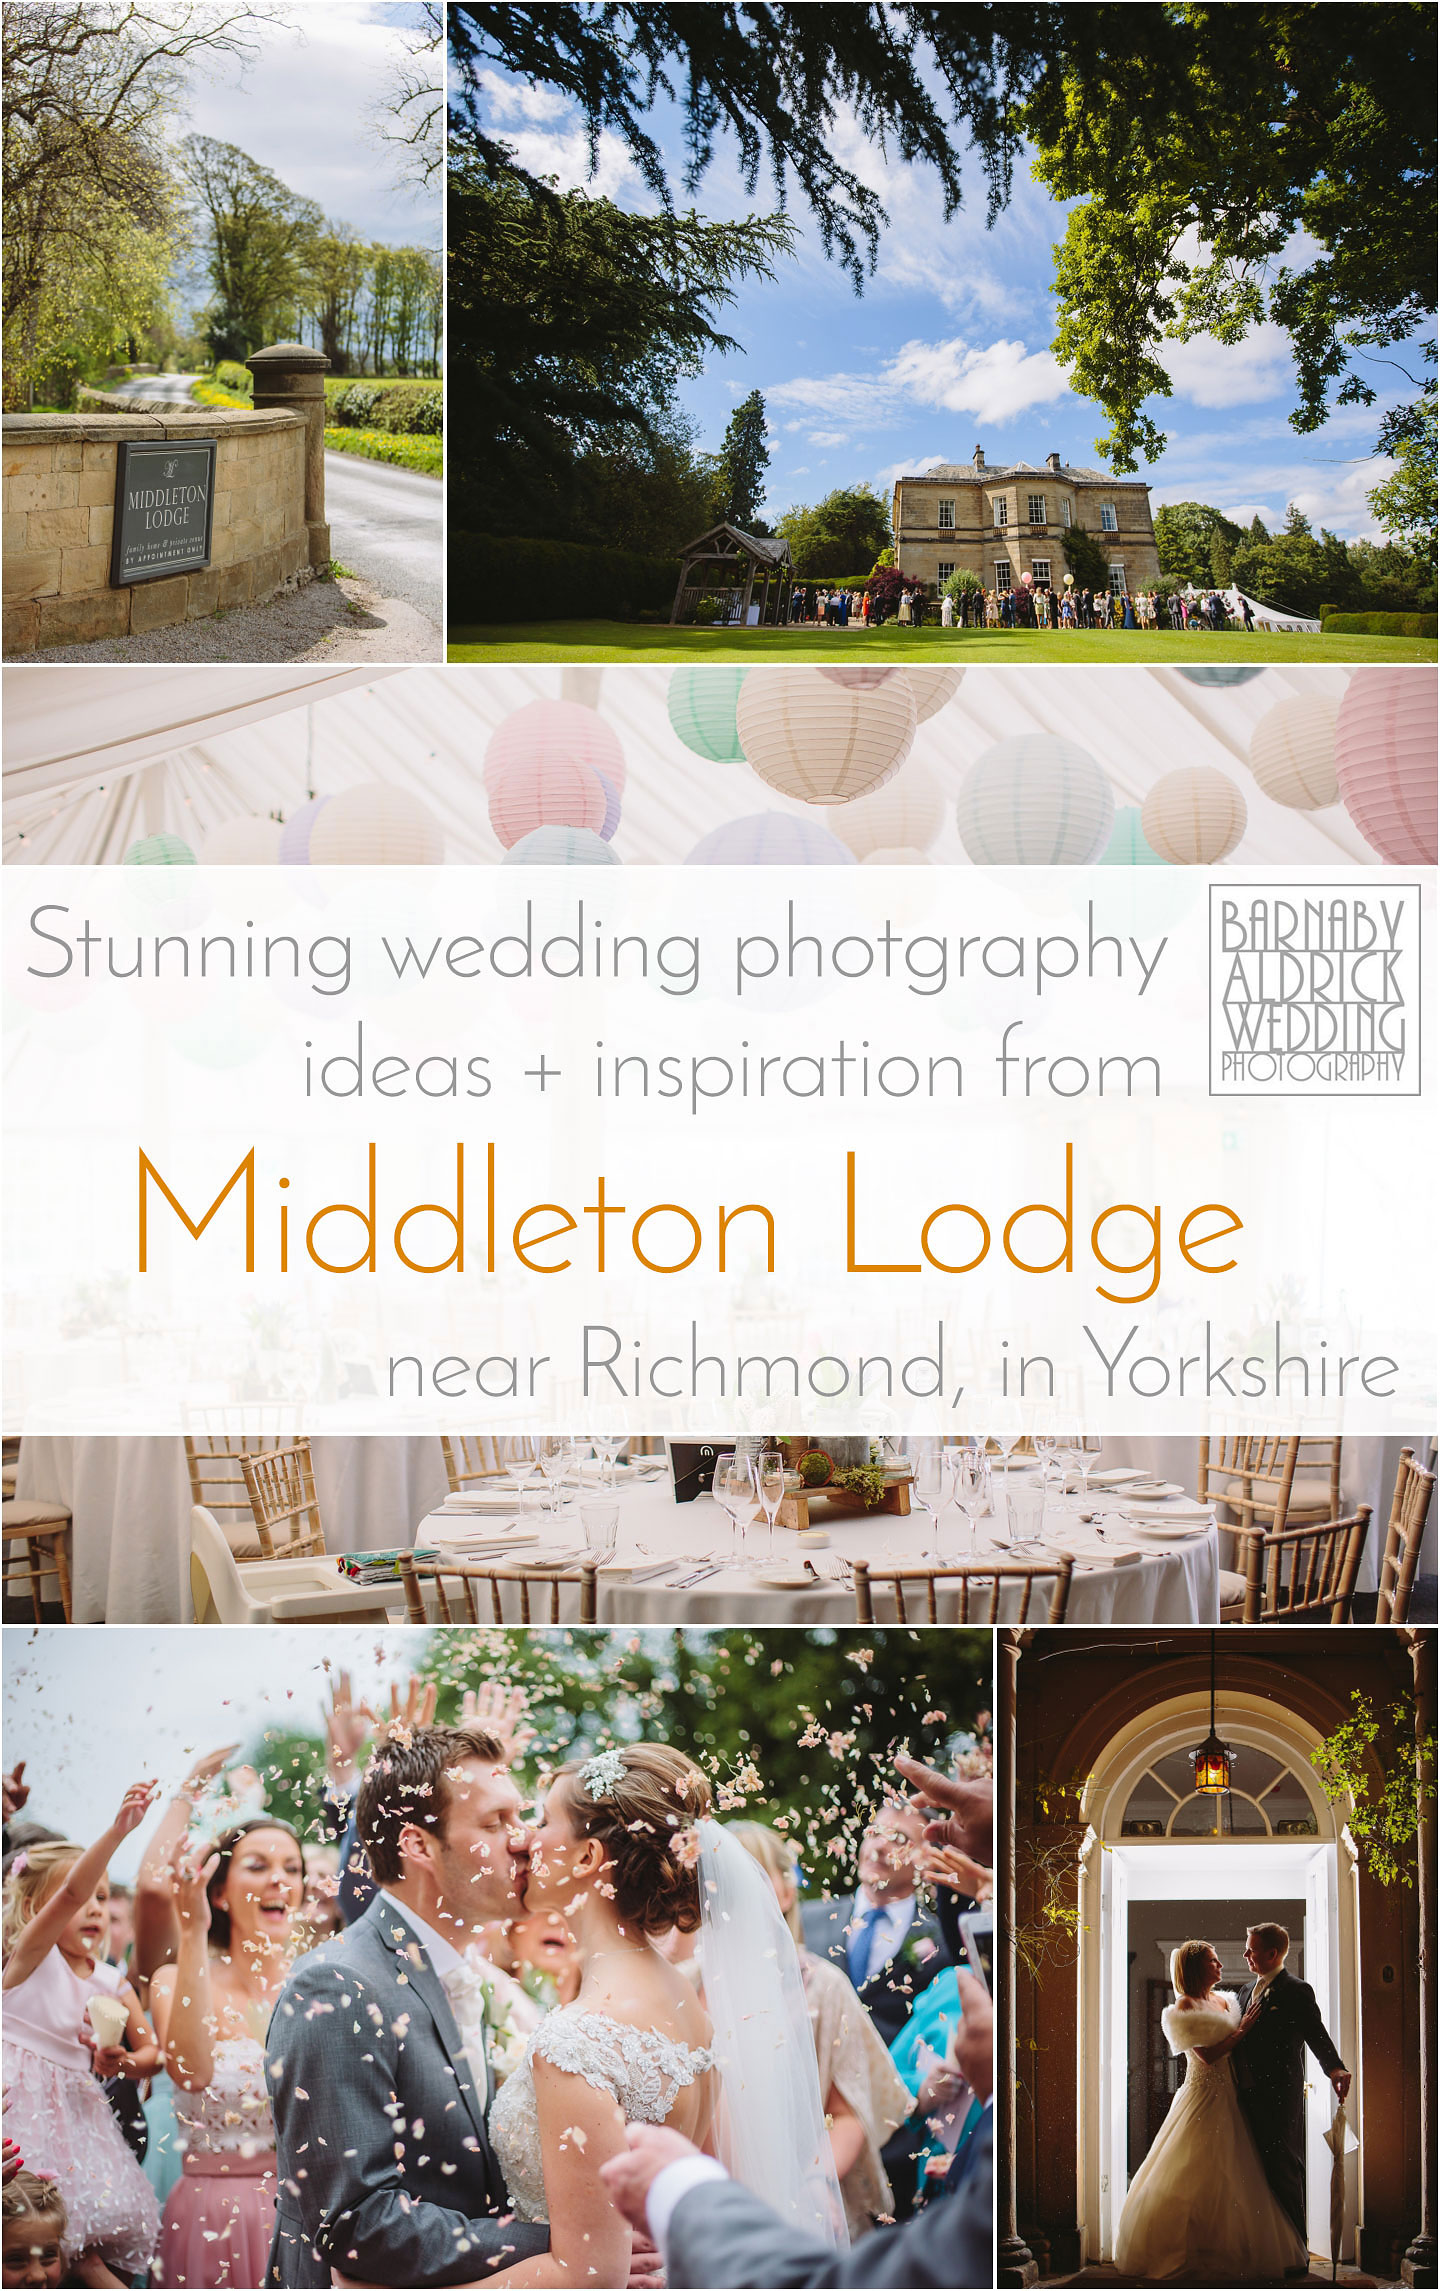 Wedding Photography ideas and inspiration from Middleton Lodge near Richmond in North Yorkshire